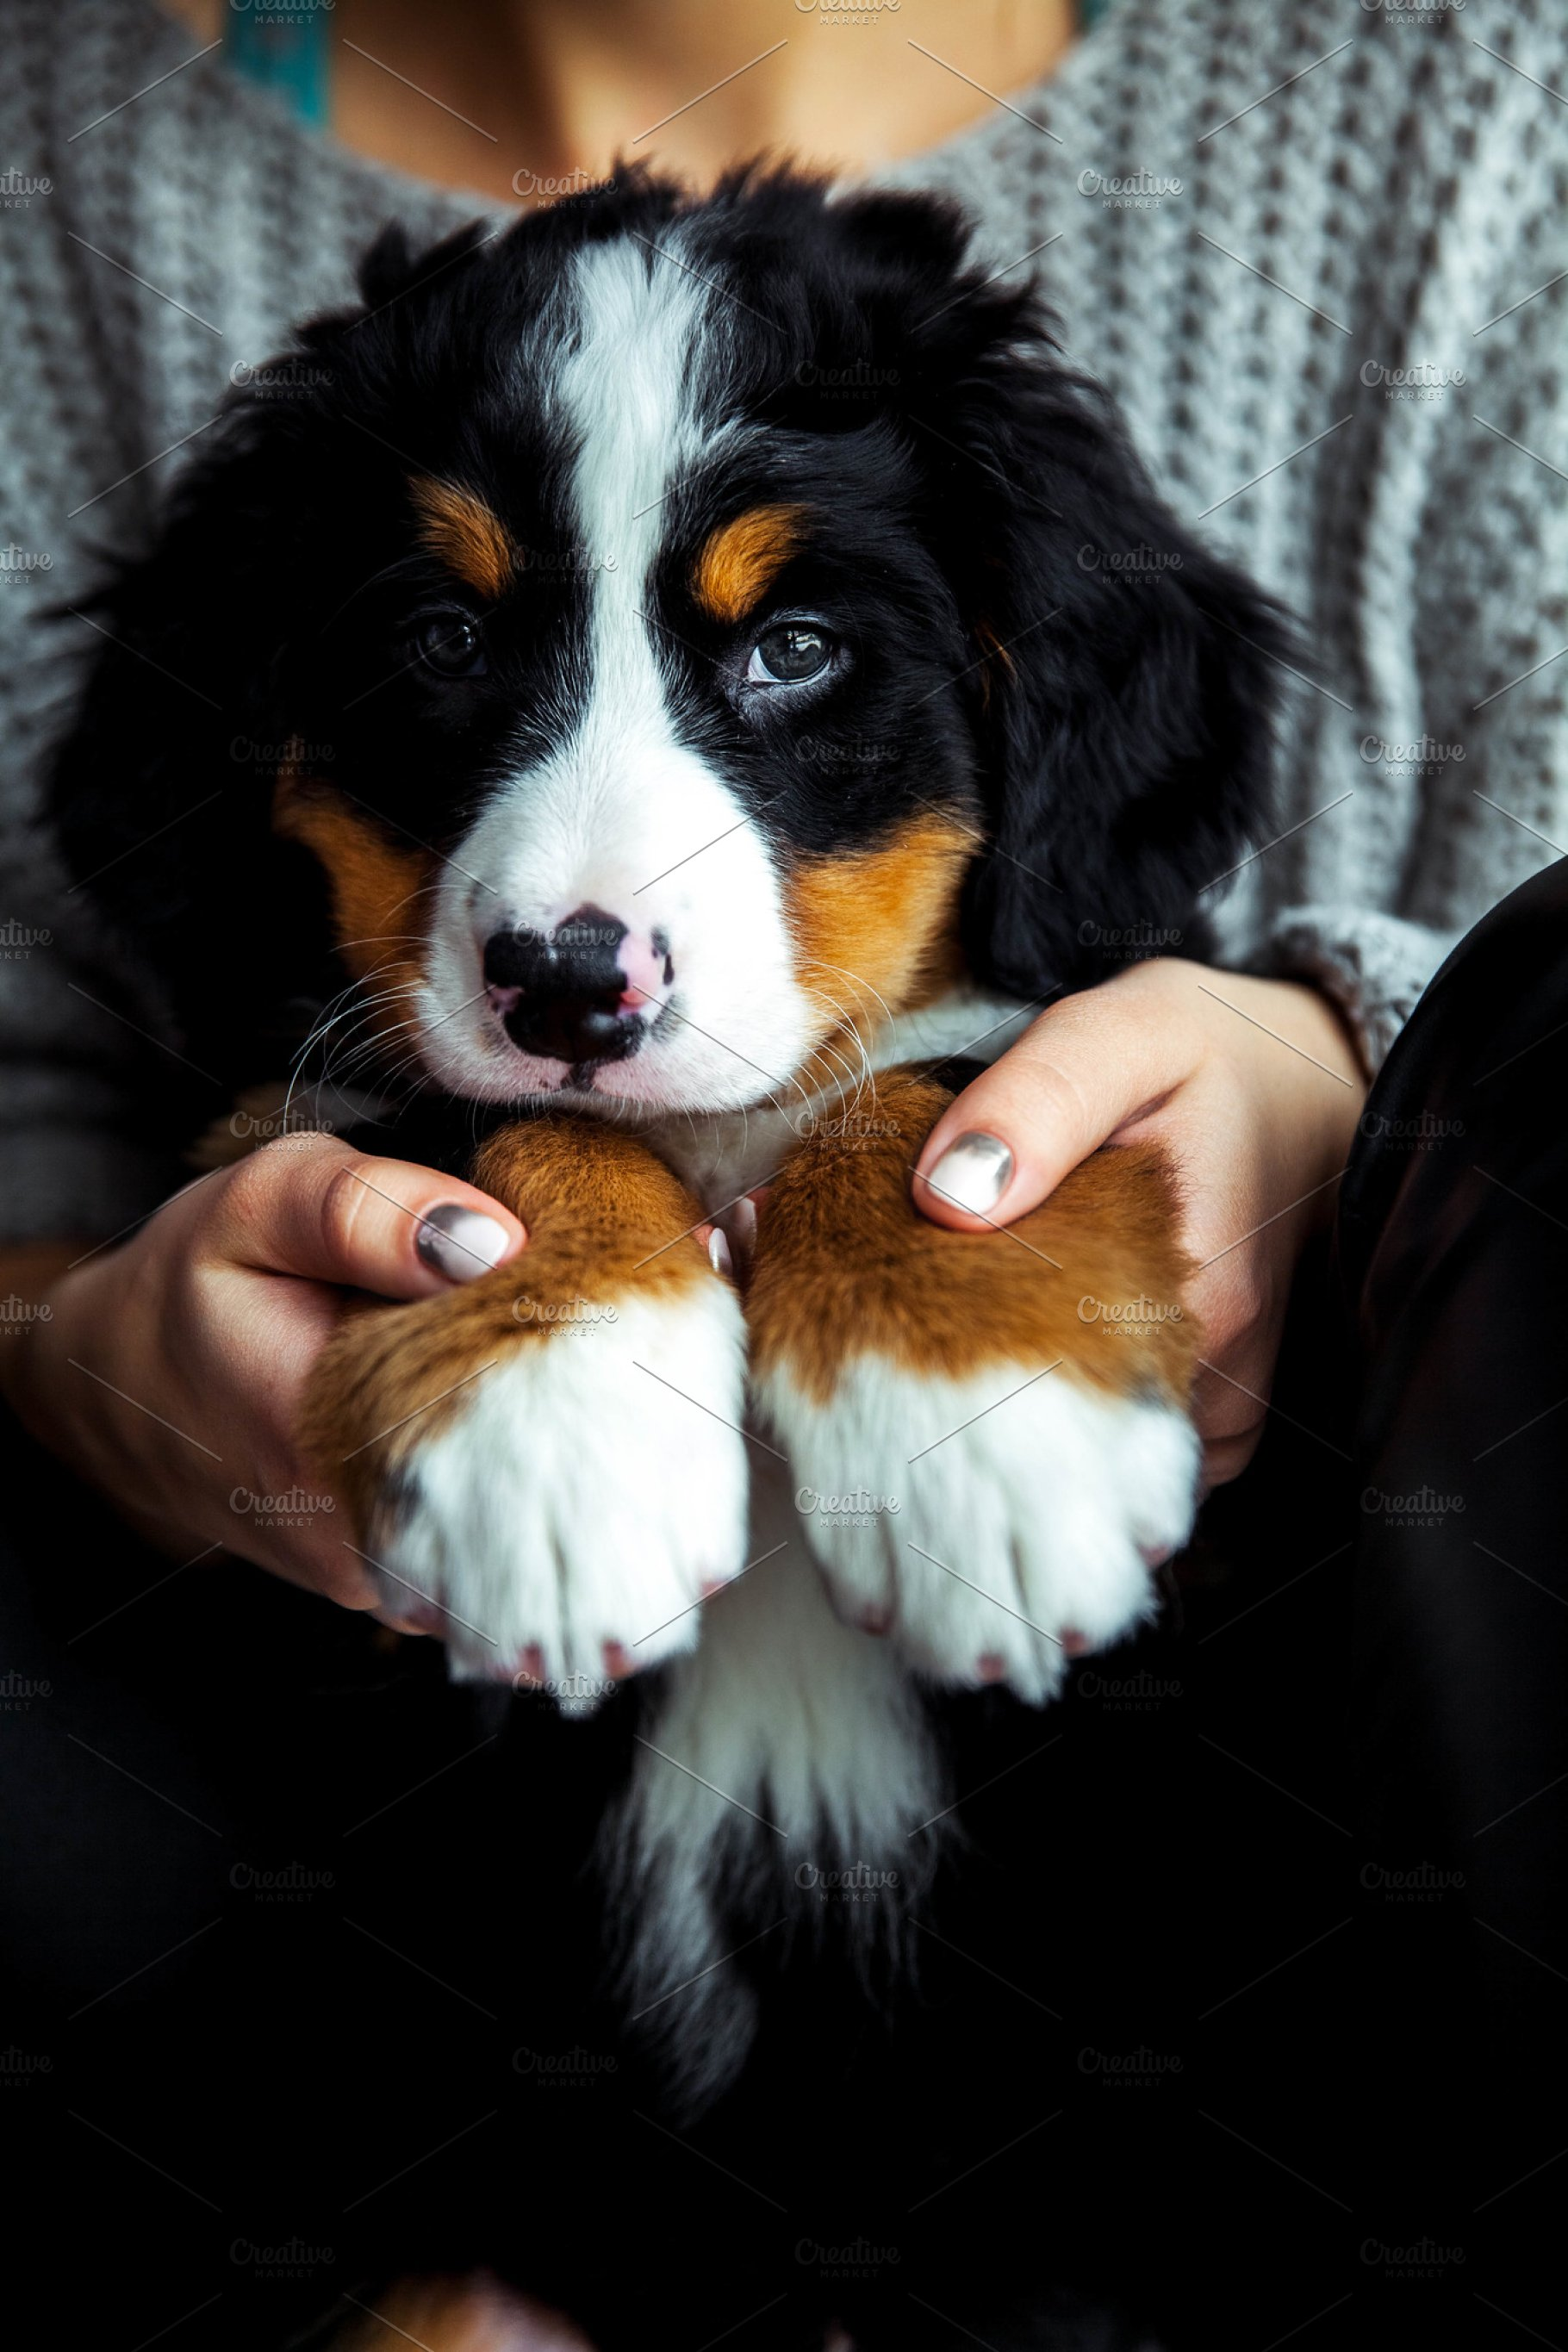 Little Puppy Of Bernese Mountain Dog On Hands Of Fashionable Girl With A Nice Manicure Animals Fashion